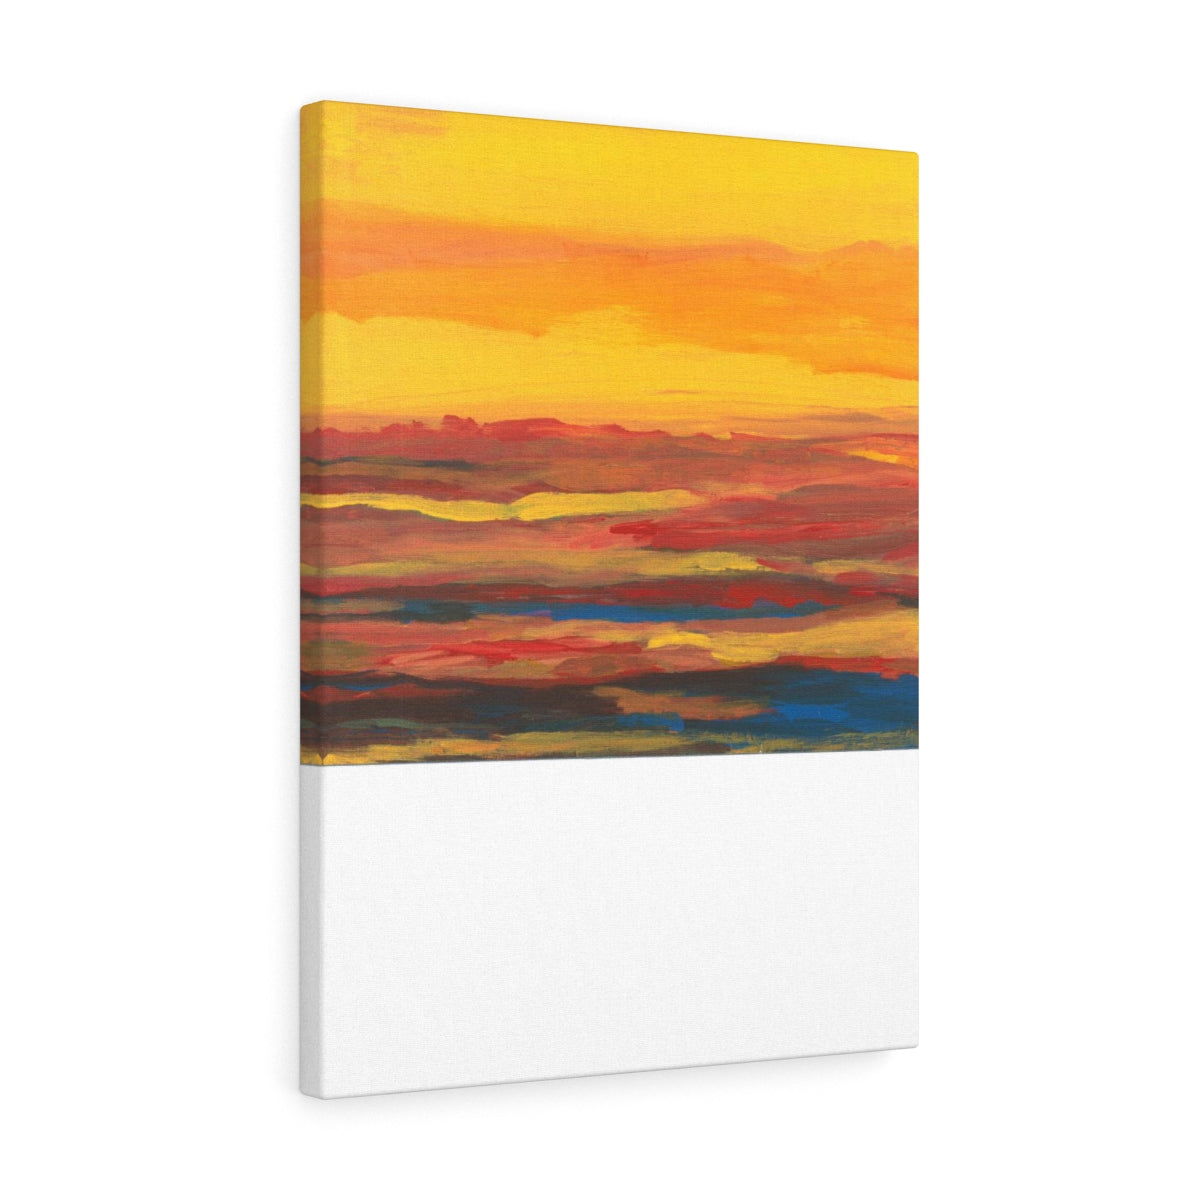 "SUNRISE SUNSET Canvas Gallery Wraps  10"" x 8"""